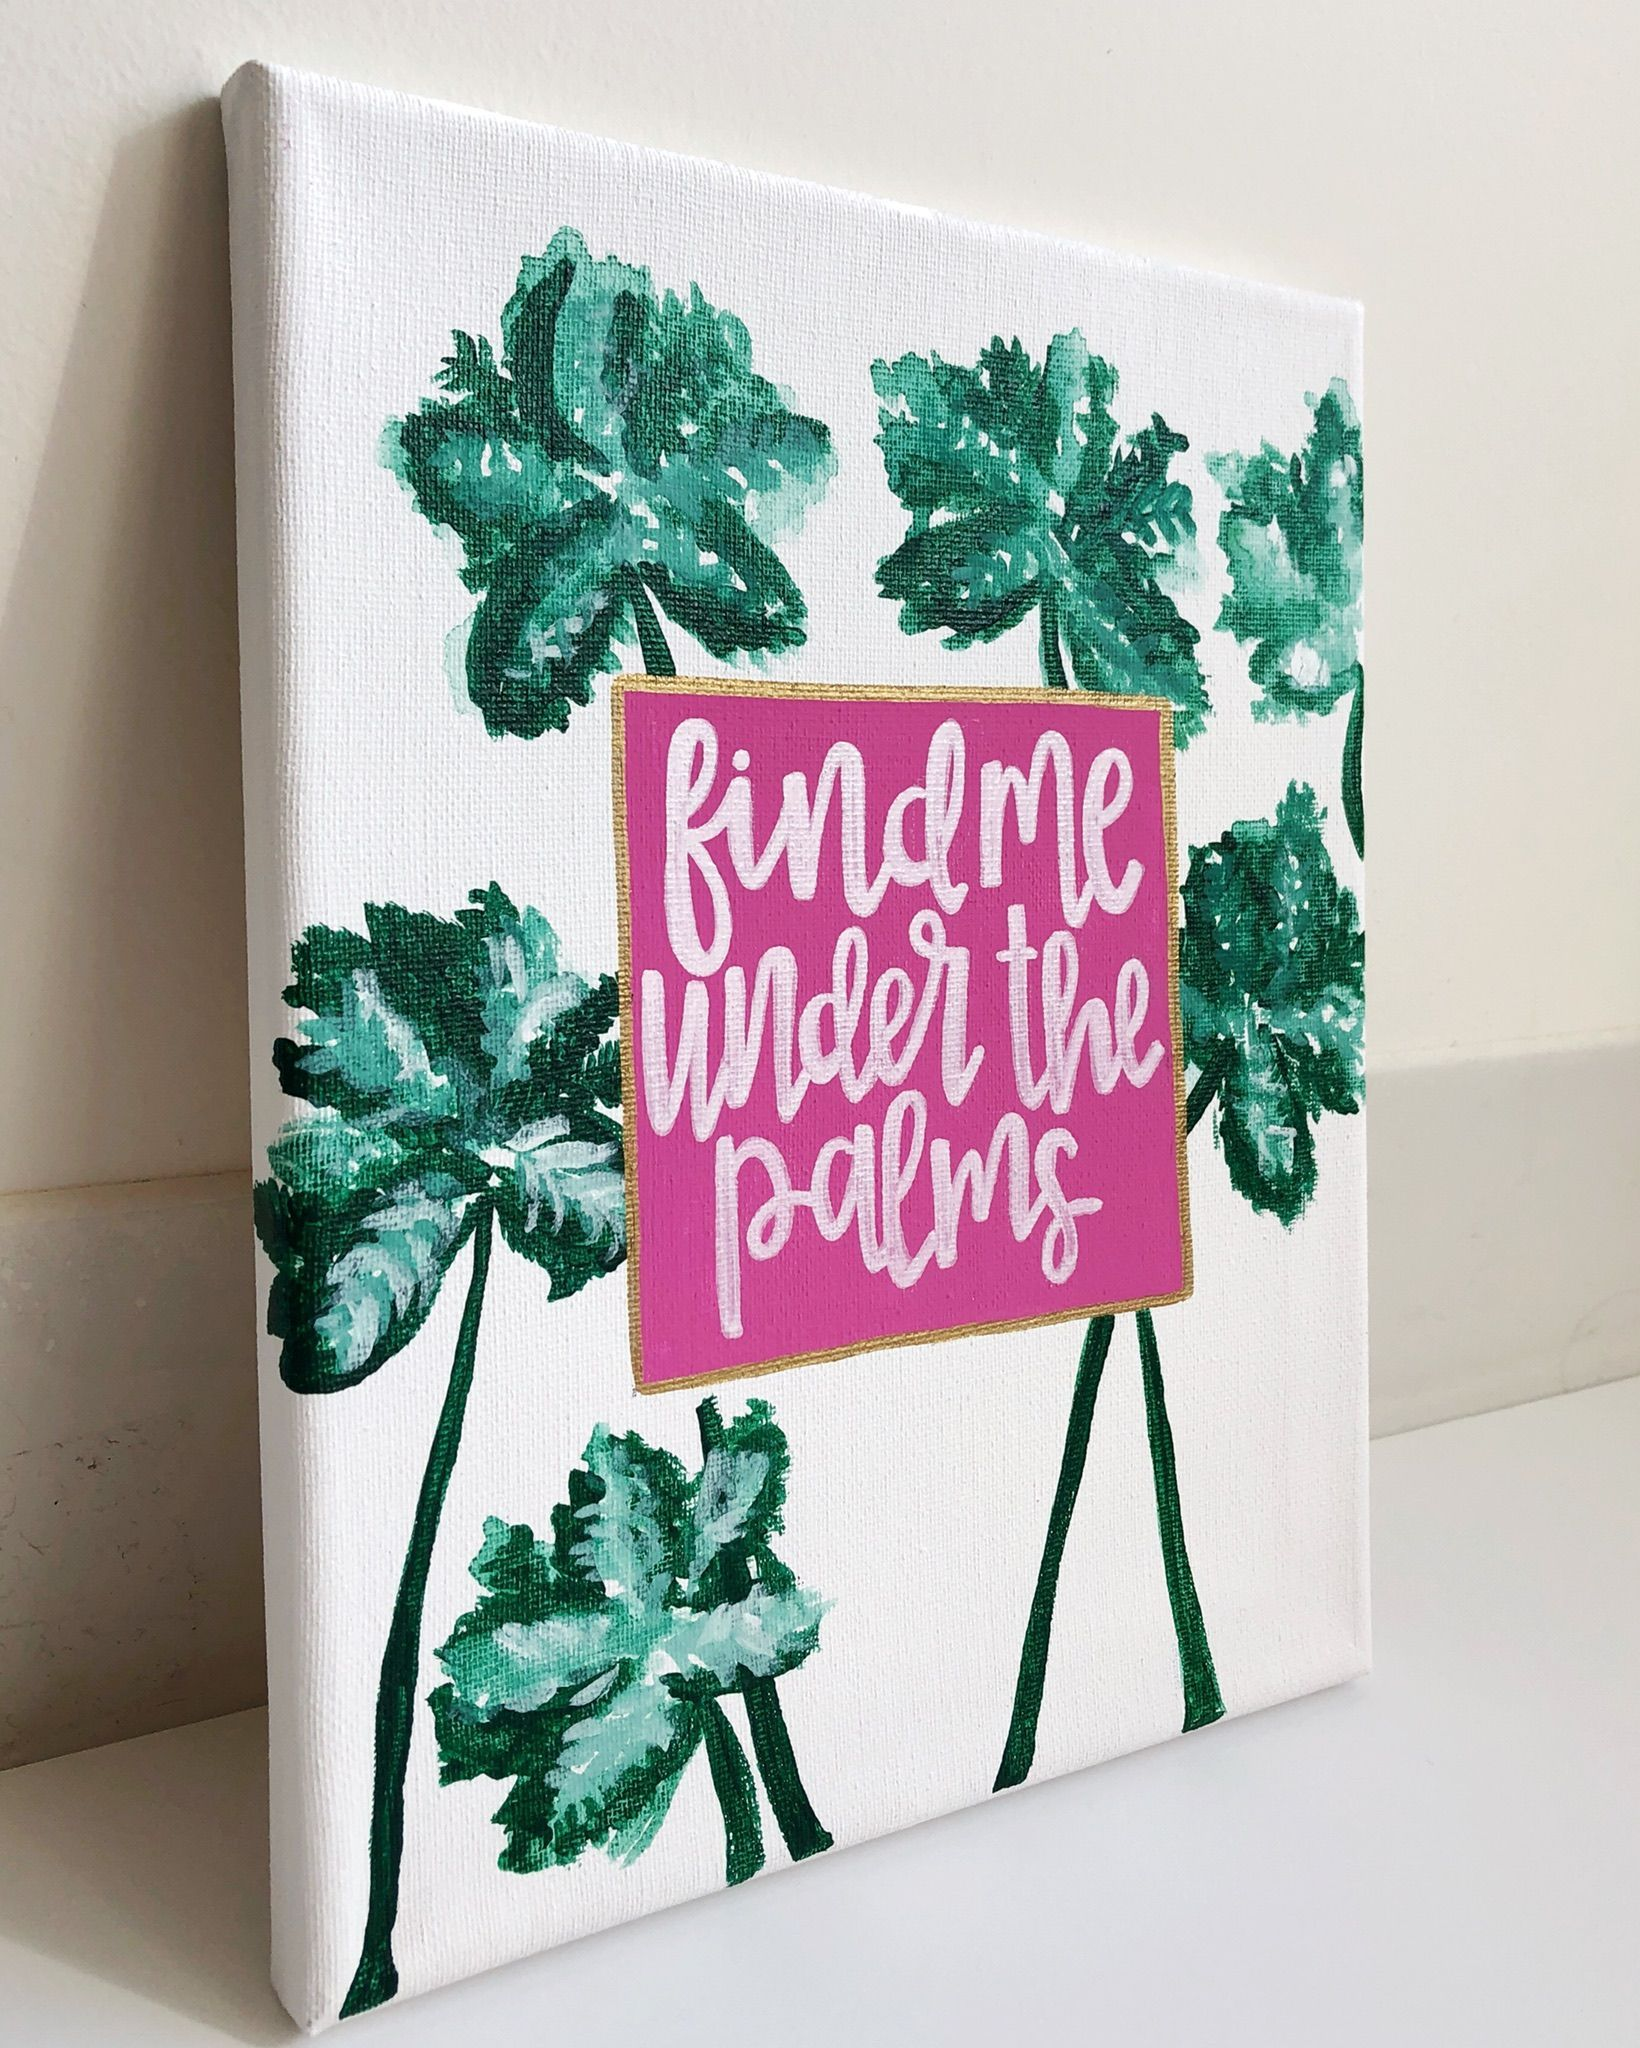 Find Me An Apartment: Canvas- Find Me Under The Palms/ Palm Tree Canvas/ Beach